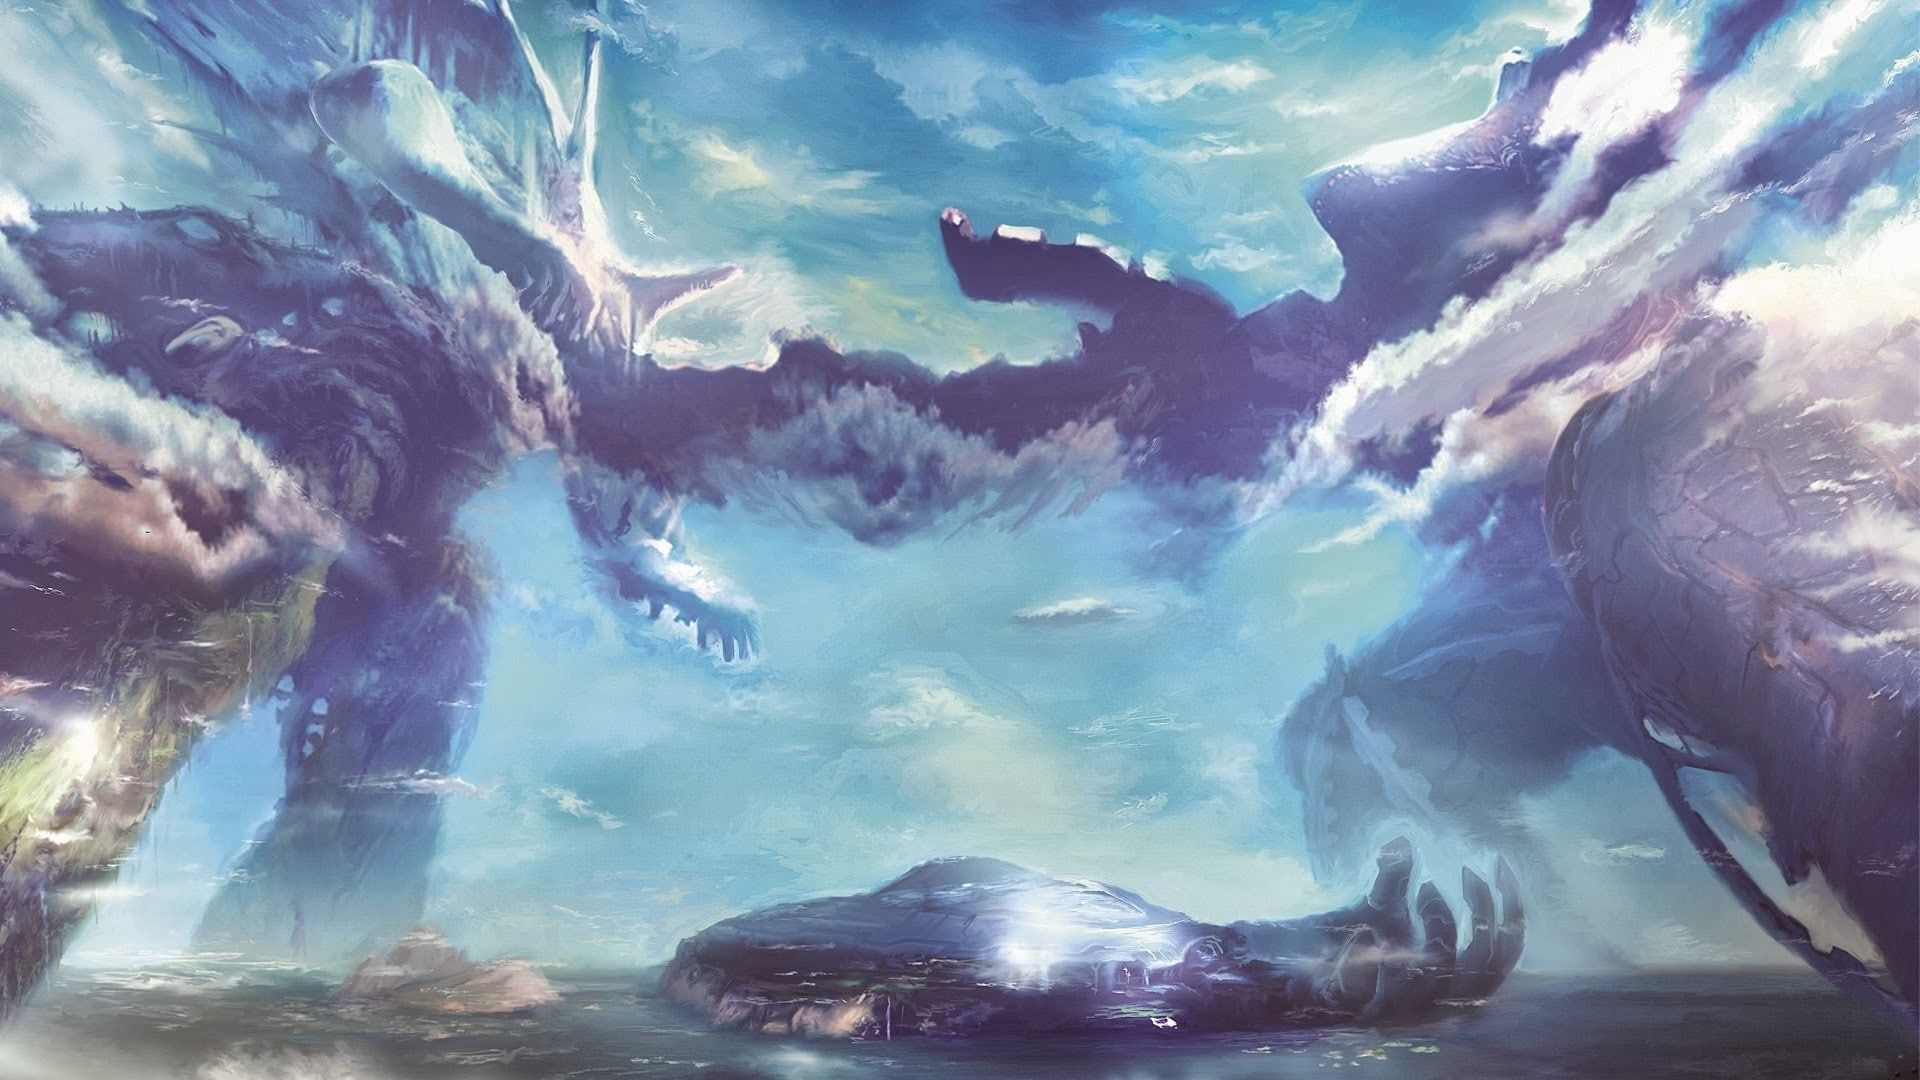 Xenoblade Chronicles Video Games Clouds Landscape 1080p Wallpaper Hdwallpaper Desktop Xenoblade Chronicles Xenoblade Chronicles Wii Concept Art